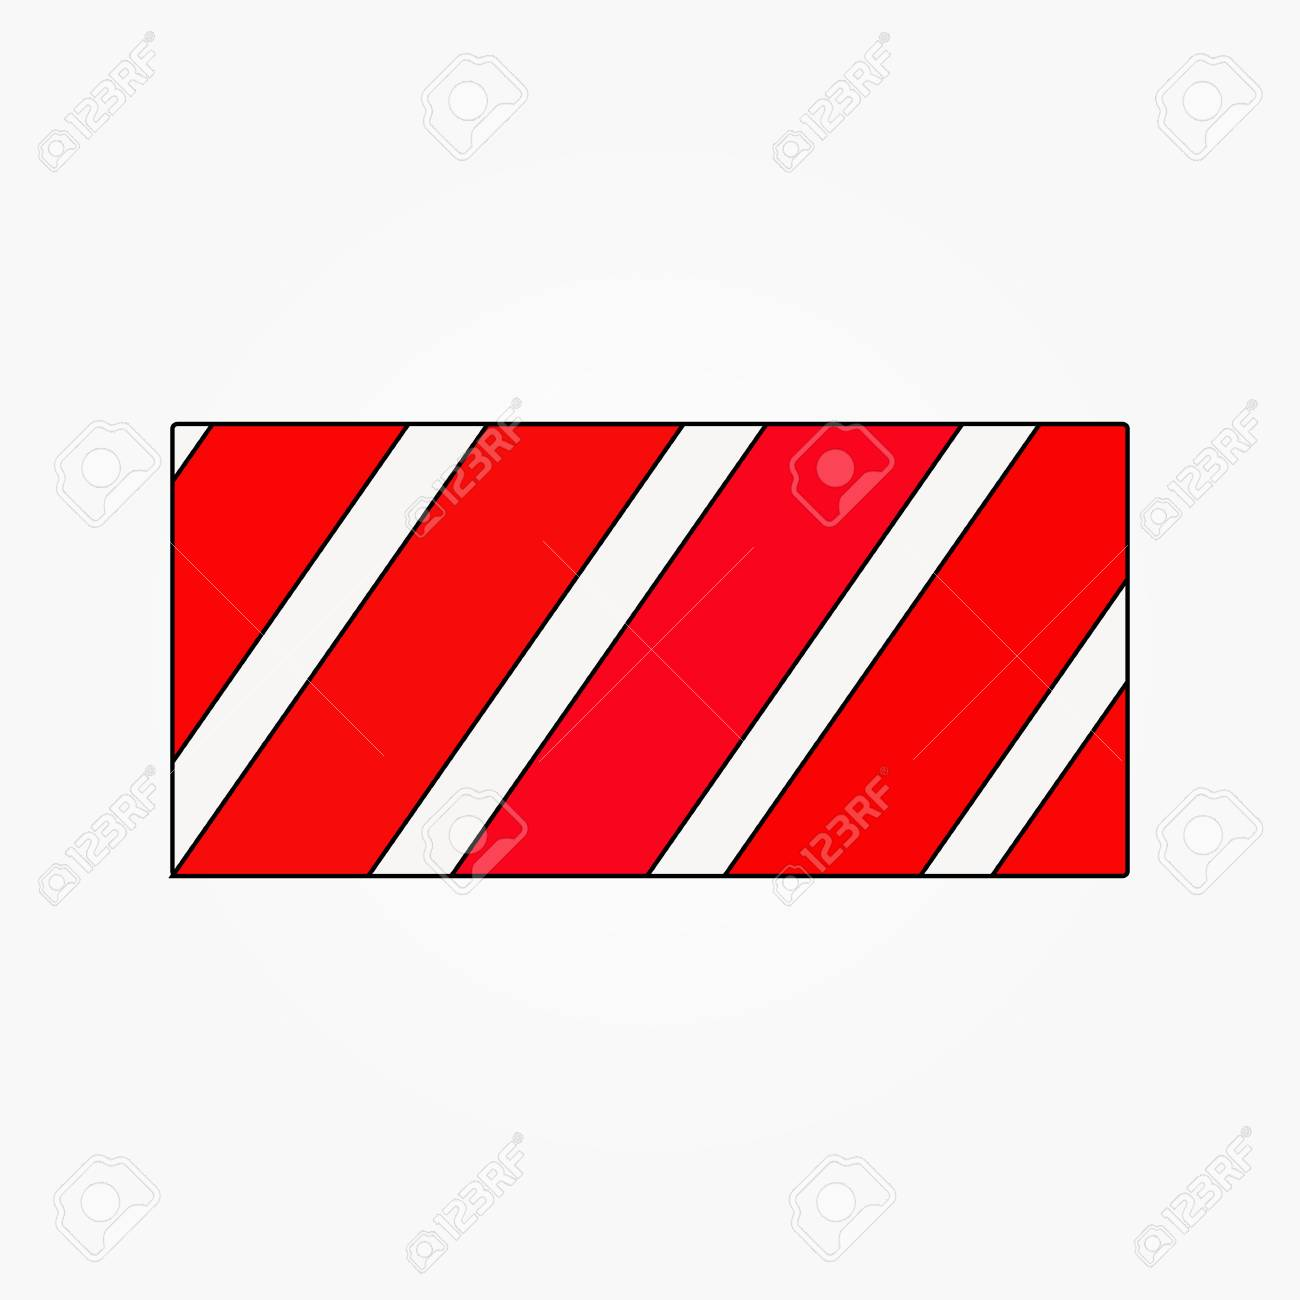 red line continues envelope forming a square vector - 119615483